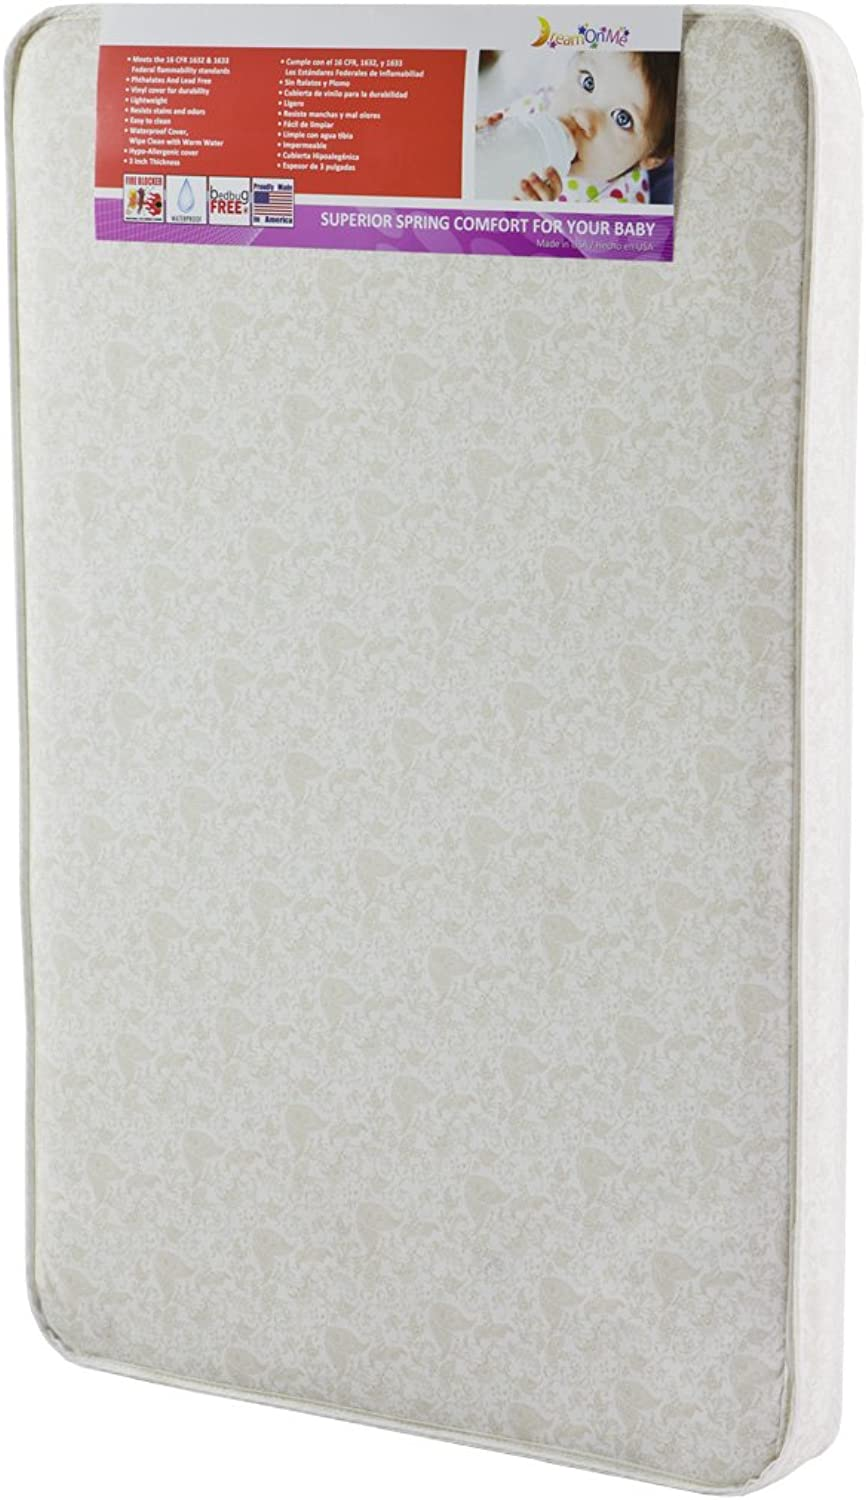 Dream On Me 3-Inch Rounded Corner Playard Mattress, White Brown